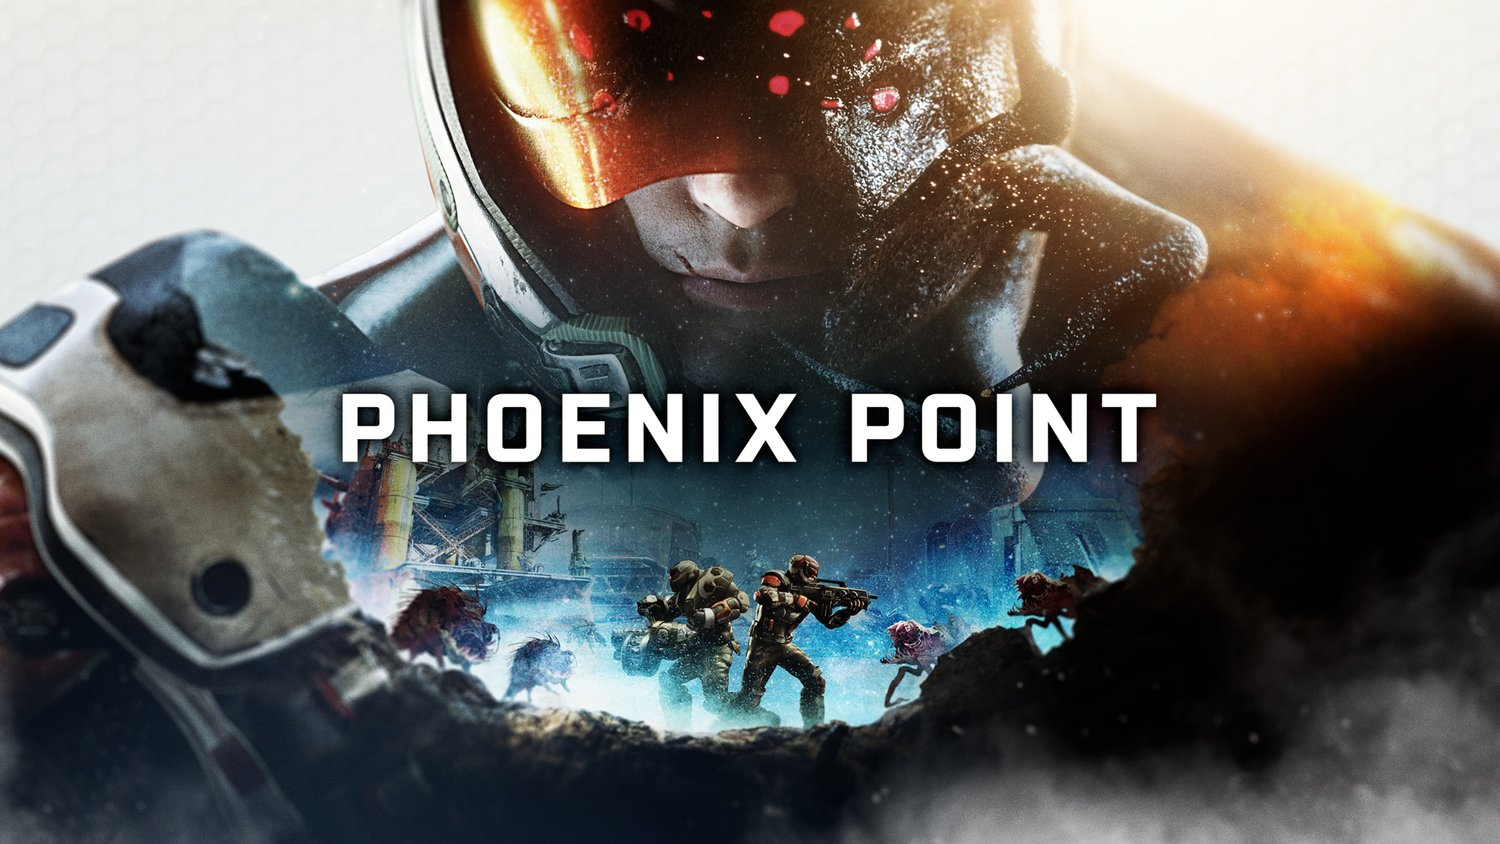 Phoenix Point - Image Gallery